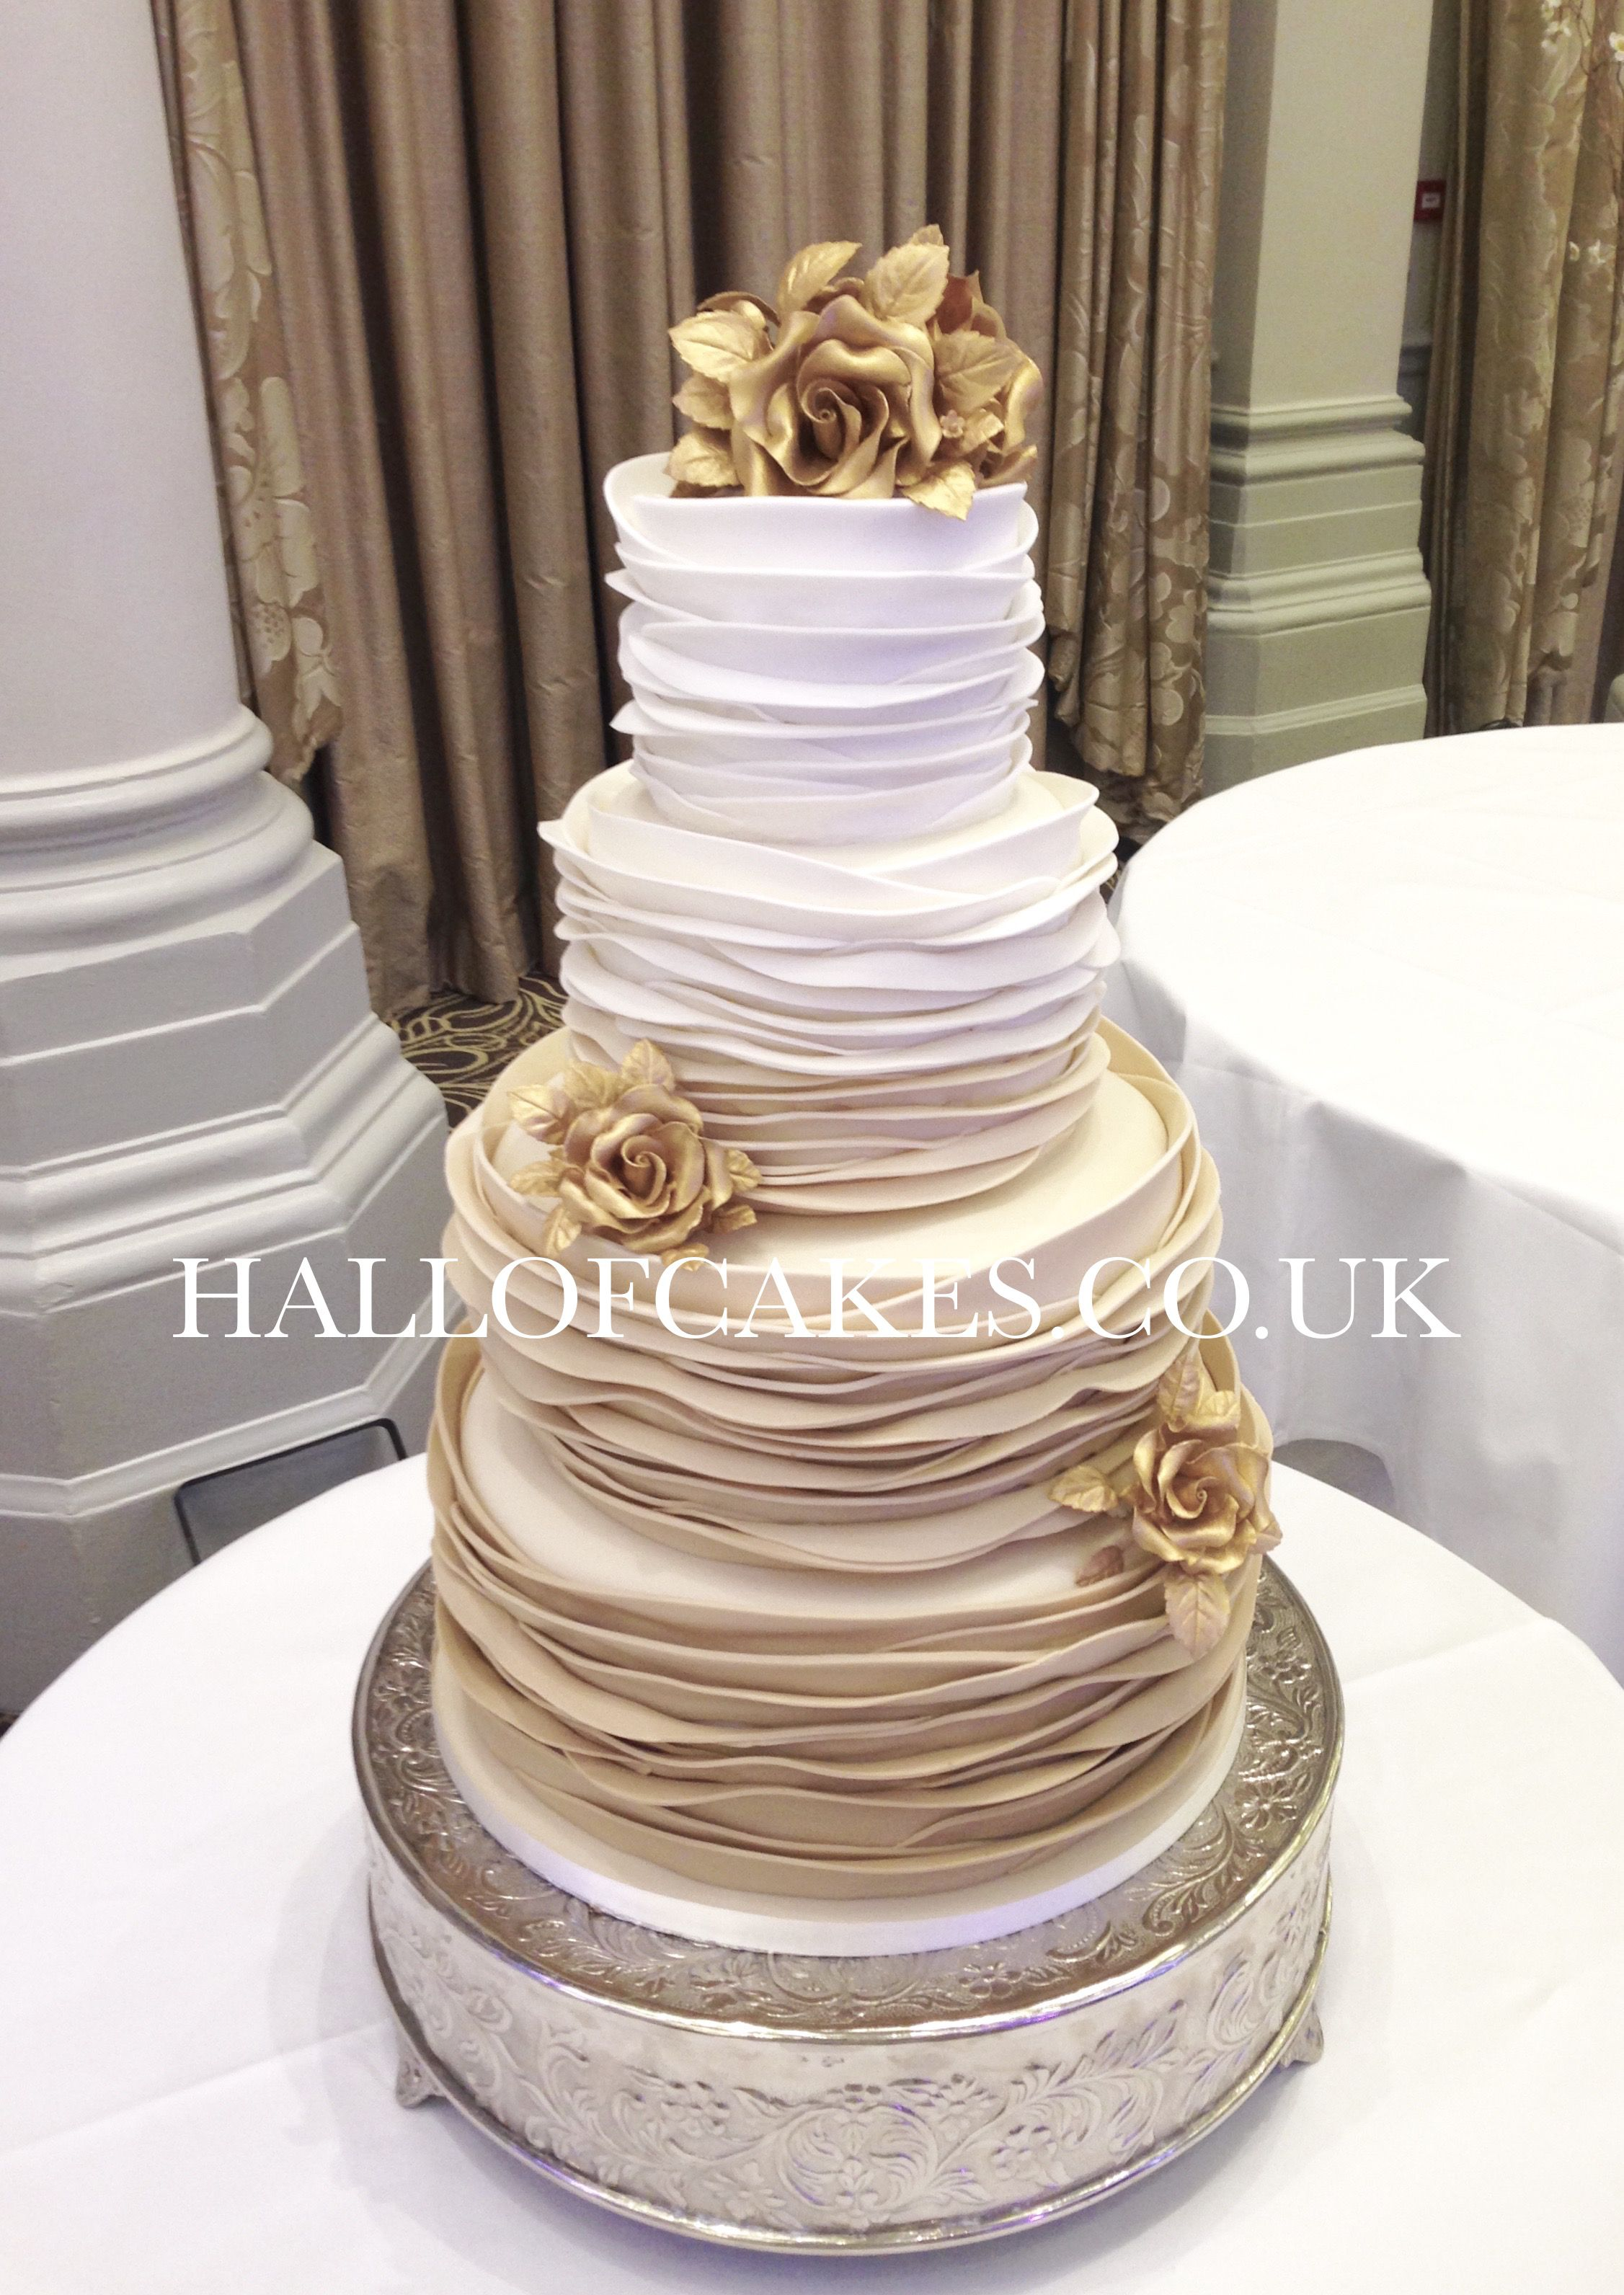 Cake Designs For Golden Wedding : Beautiful Gold Ombre Wedding Cakes by Hall of Cakes cake ...